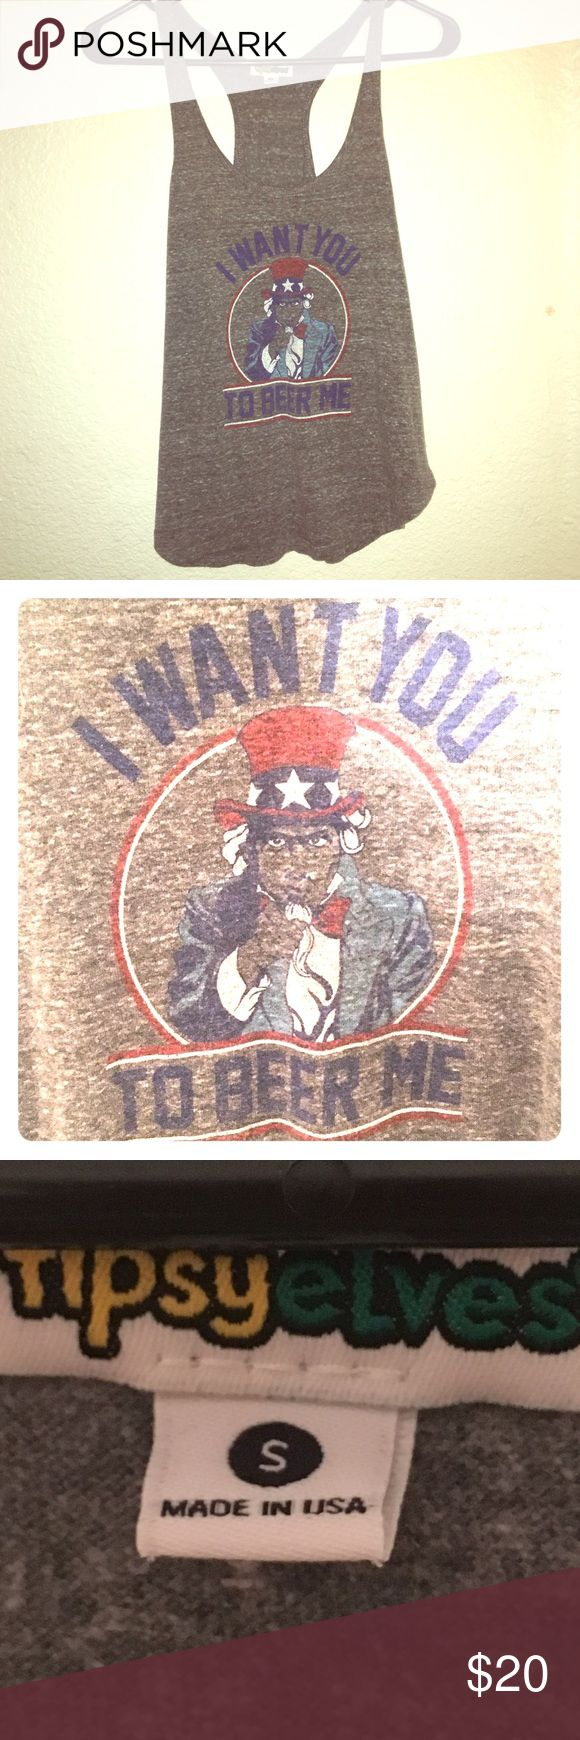 "Grey ""I want you to beer me"" racerback tank-SM Small grey racerback tank with good ole Uncle Sam graphic reading ""I WANT YOU TO BEER ME"" super fun shirt that I've only worn once, unfortunately too big :/. But throw a red or blue bandeau under it to make it pop! The 4th may be over but celebrating America is always in style!!!🇺🇸🇺🇸 tipsy elves Tops Tank Tops"